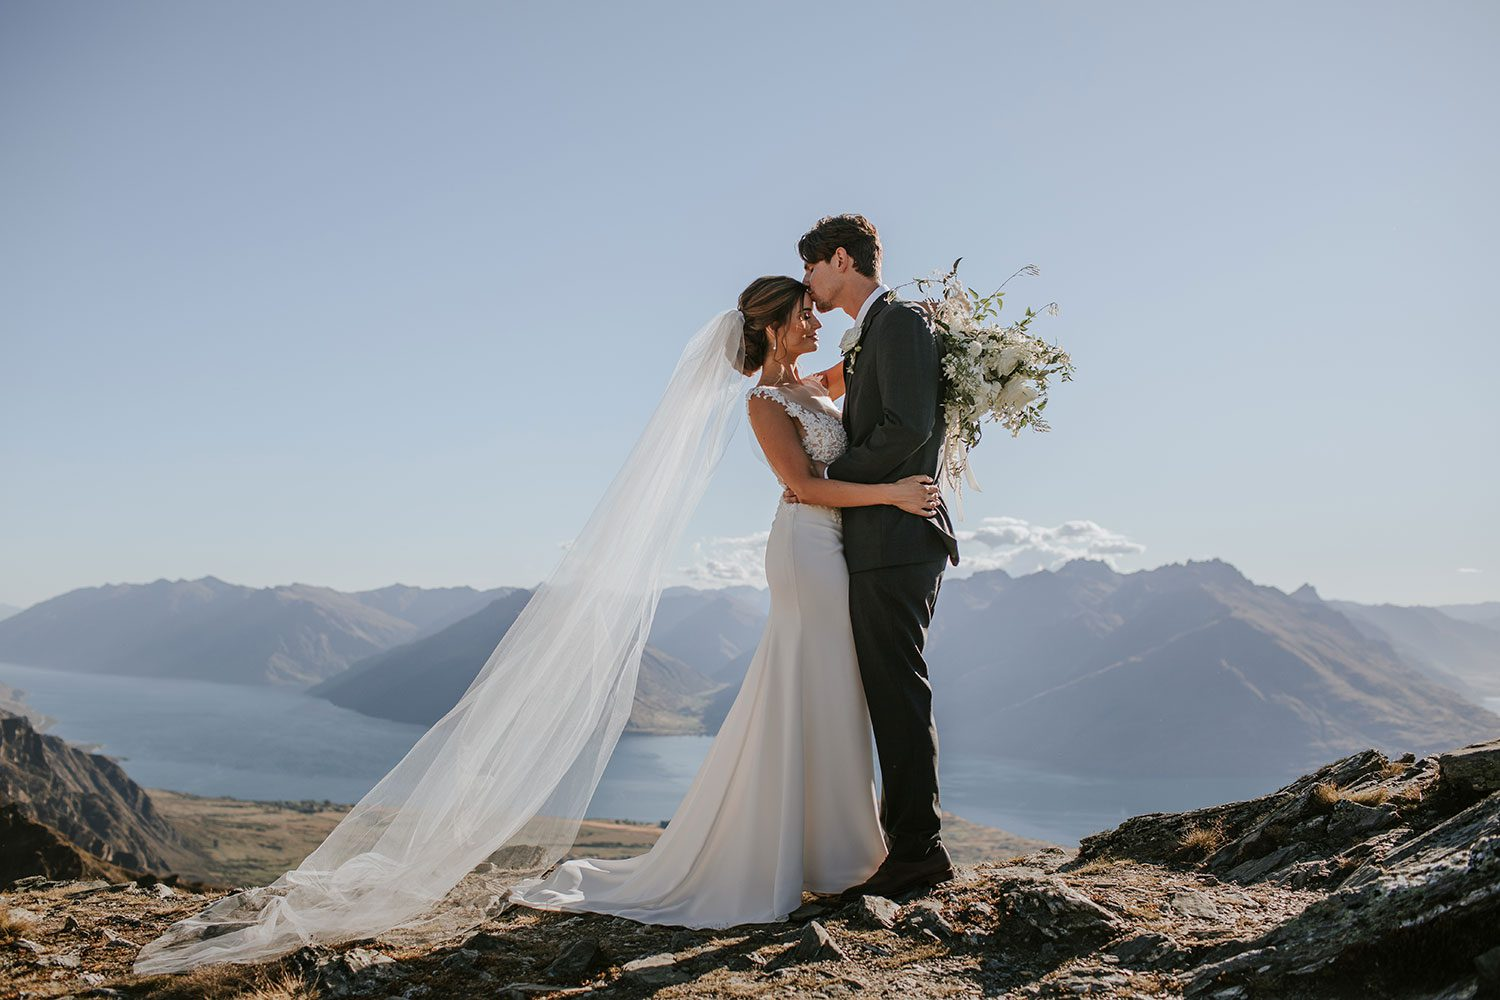 Bride wearing bespoke bridal gown with richly beaded lace over sheer tulle bodice and low back from Auckland wedding dress designer Vinka designs - profile with groom kissing forehead